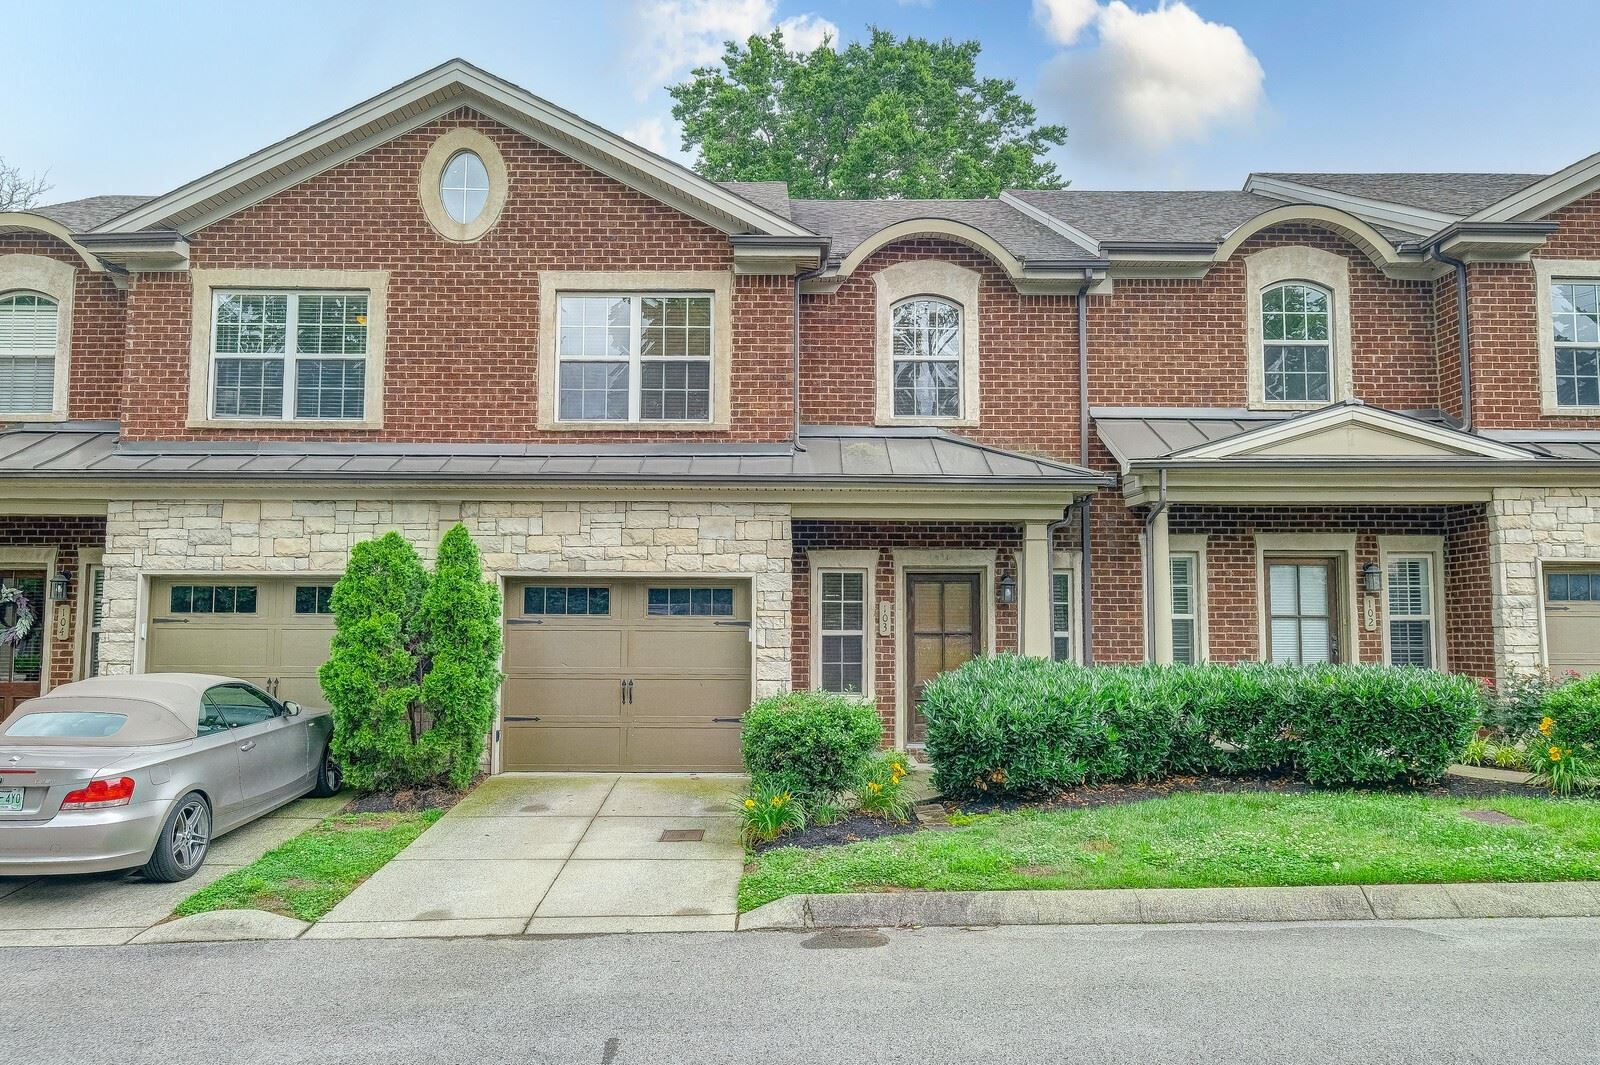 Photo of 5606 Cloverland Dr #103, Brentwood, TN 37027 (MLS # 2287902)